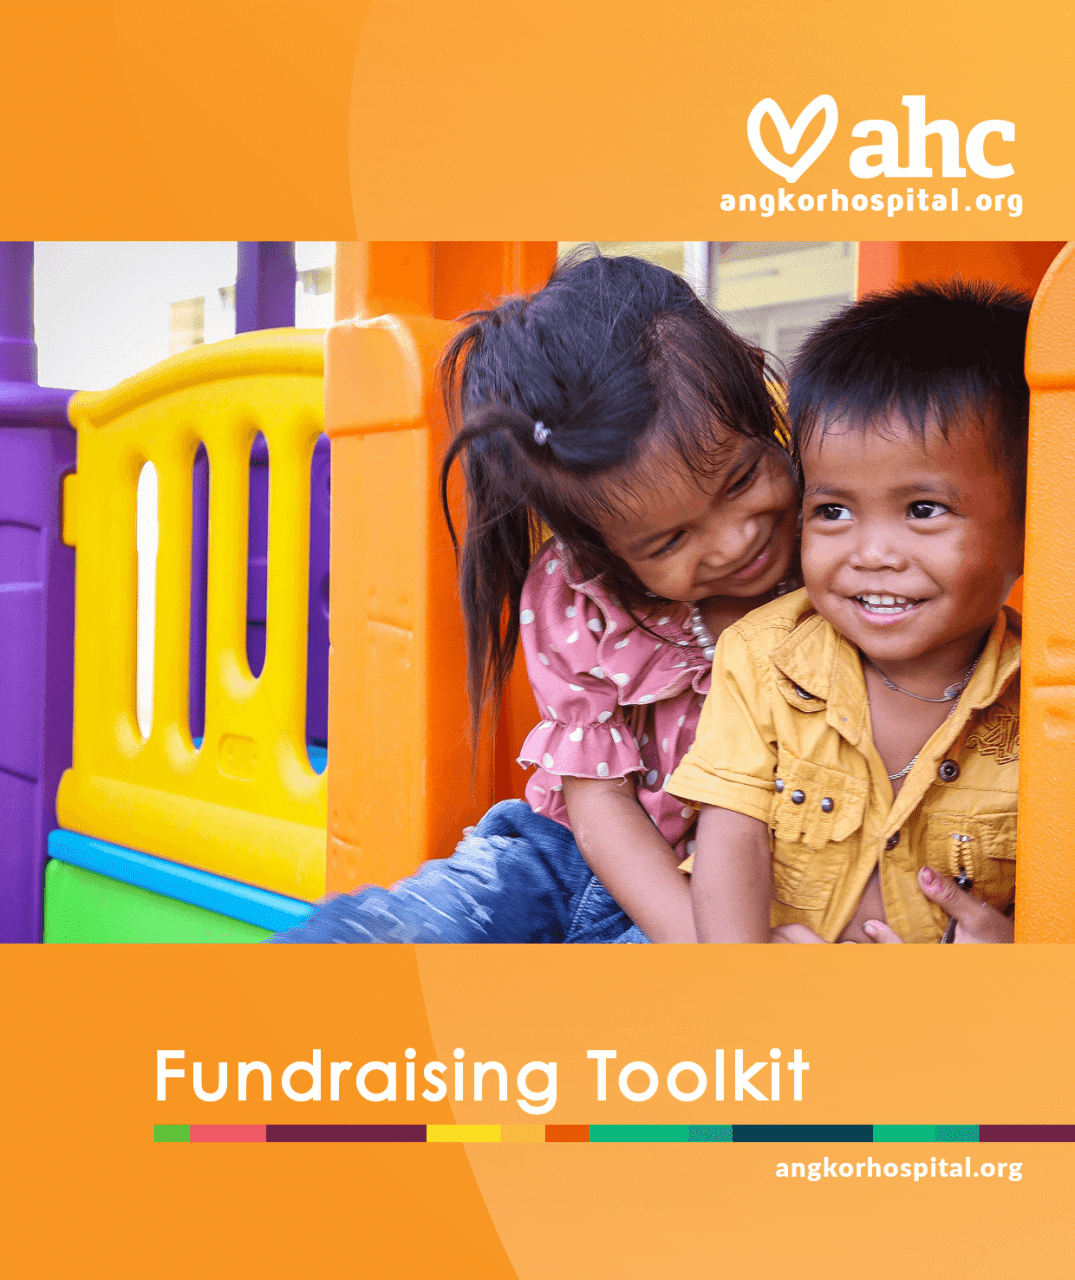 AHC Fundraising Toolkit